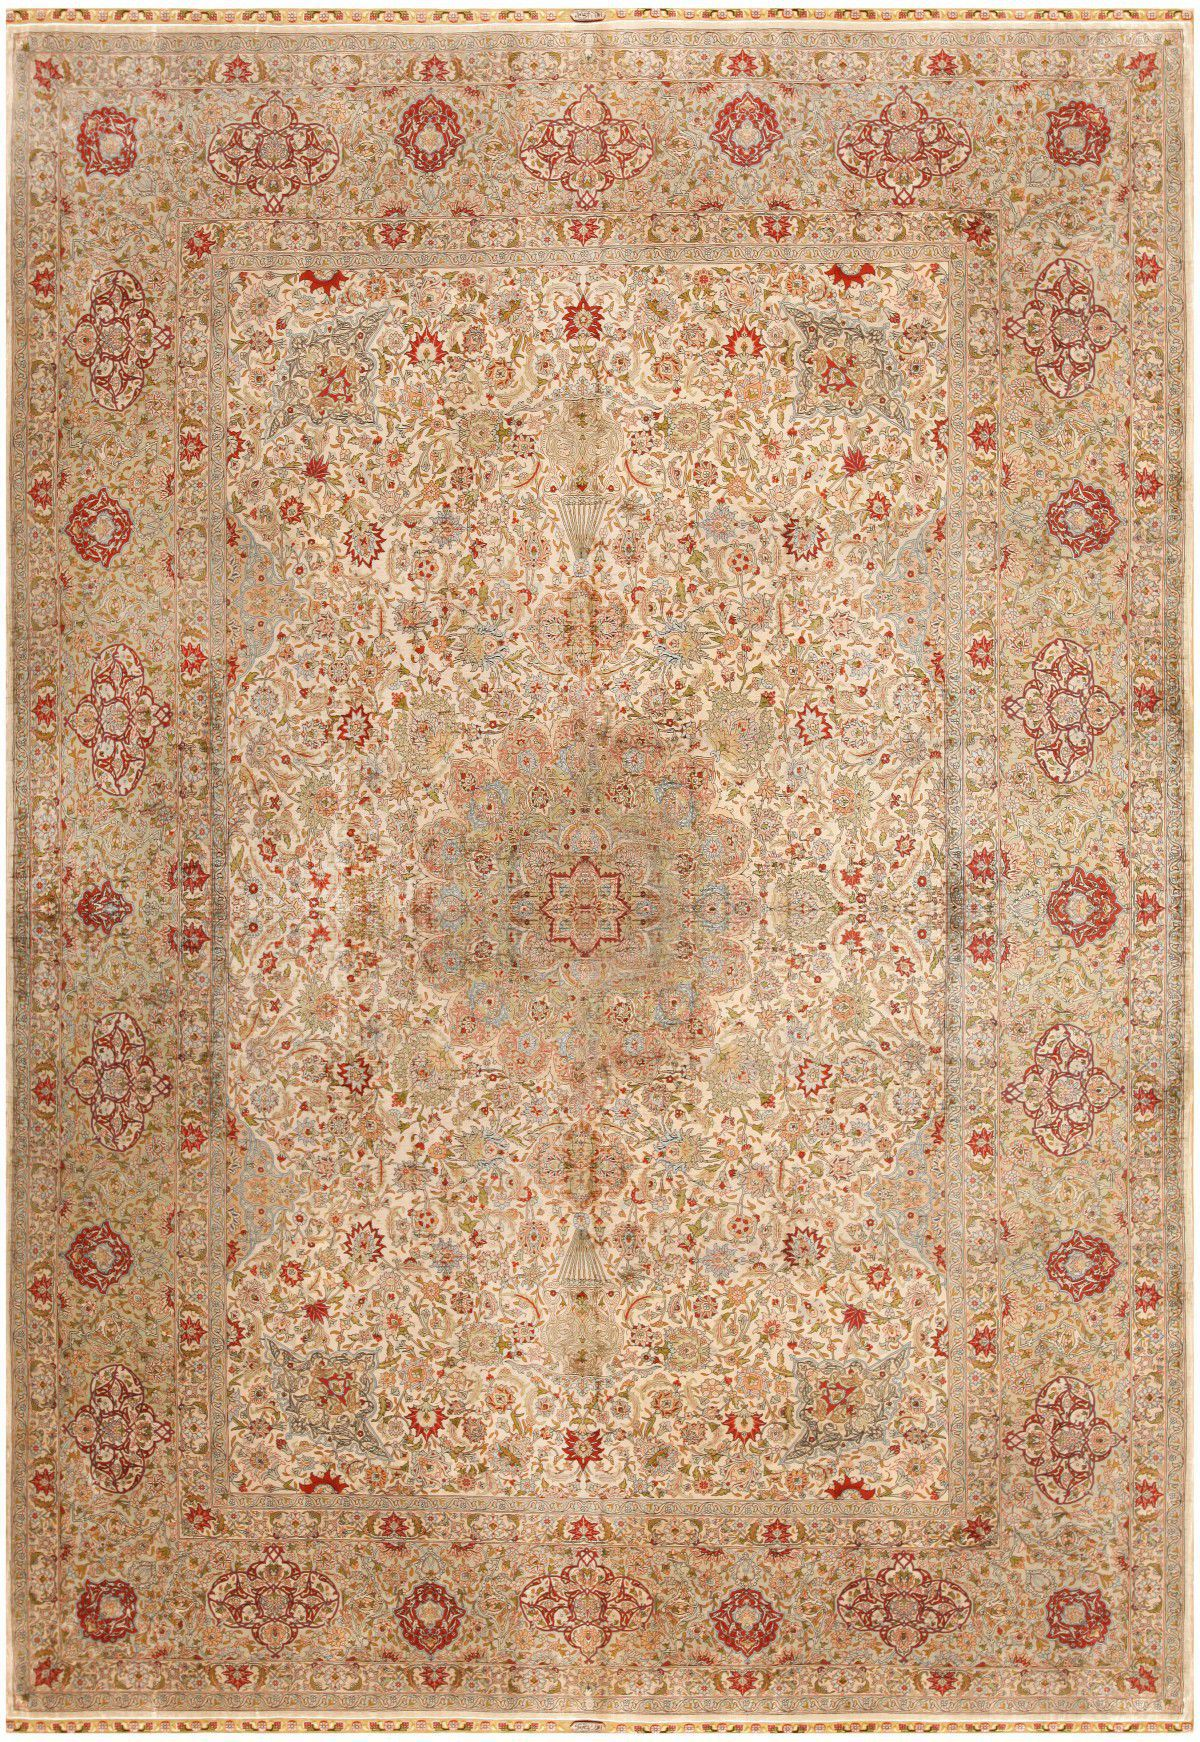 Hereke Silk & Wool Rugs